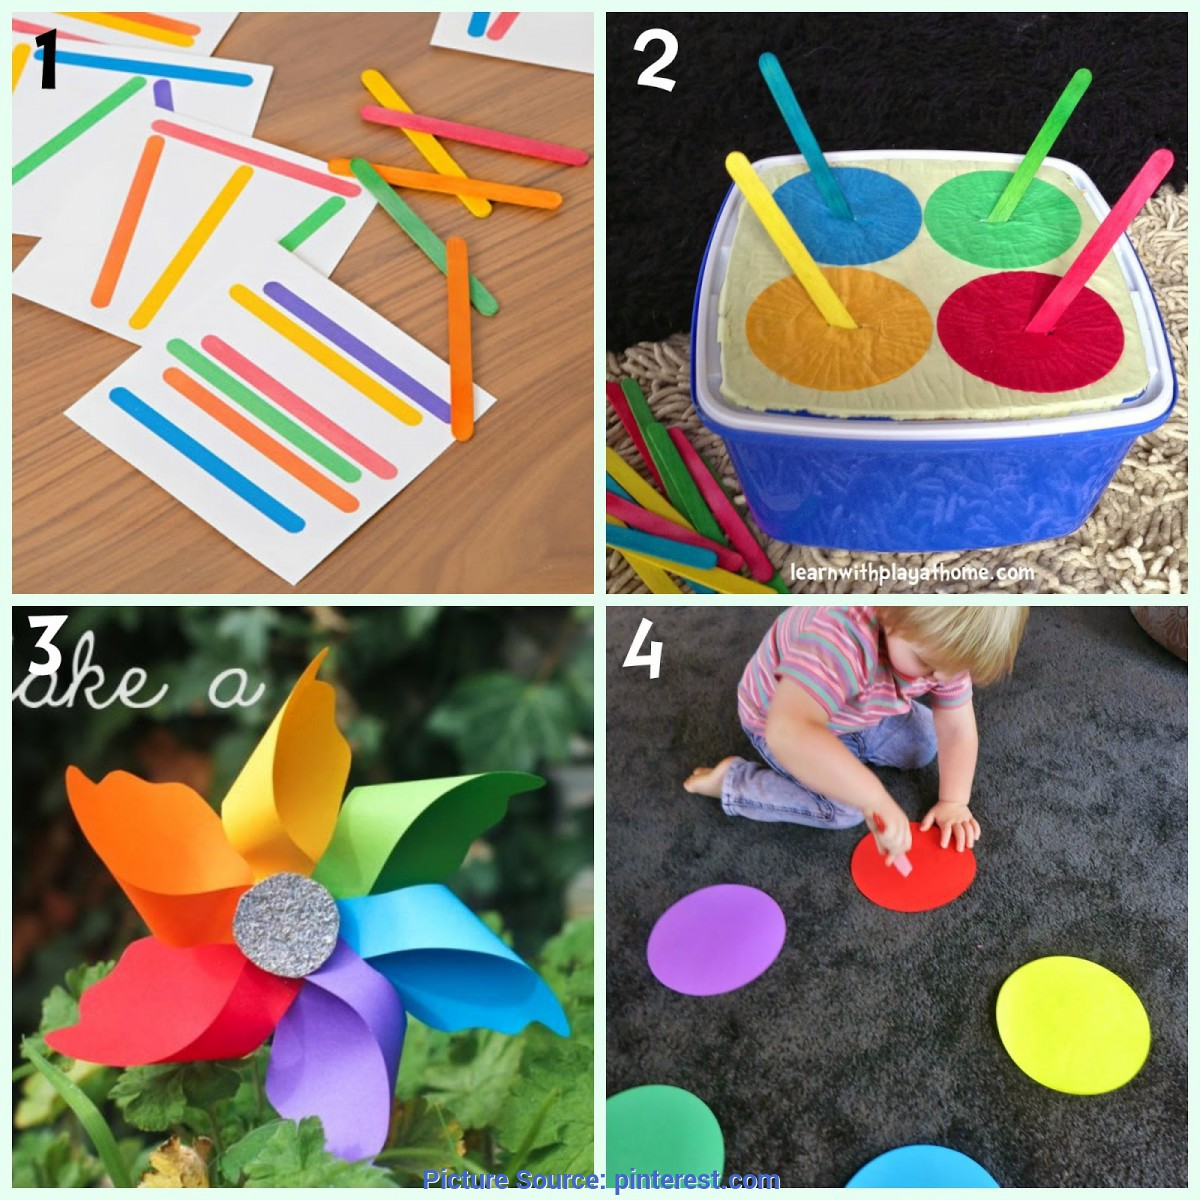 Useful Activities For 2 And 3 Year Olds 8 Colour Learning Activities For Kids   Learning Activitie